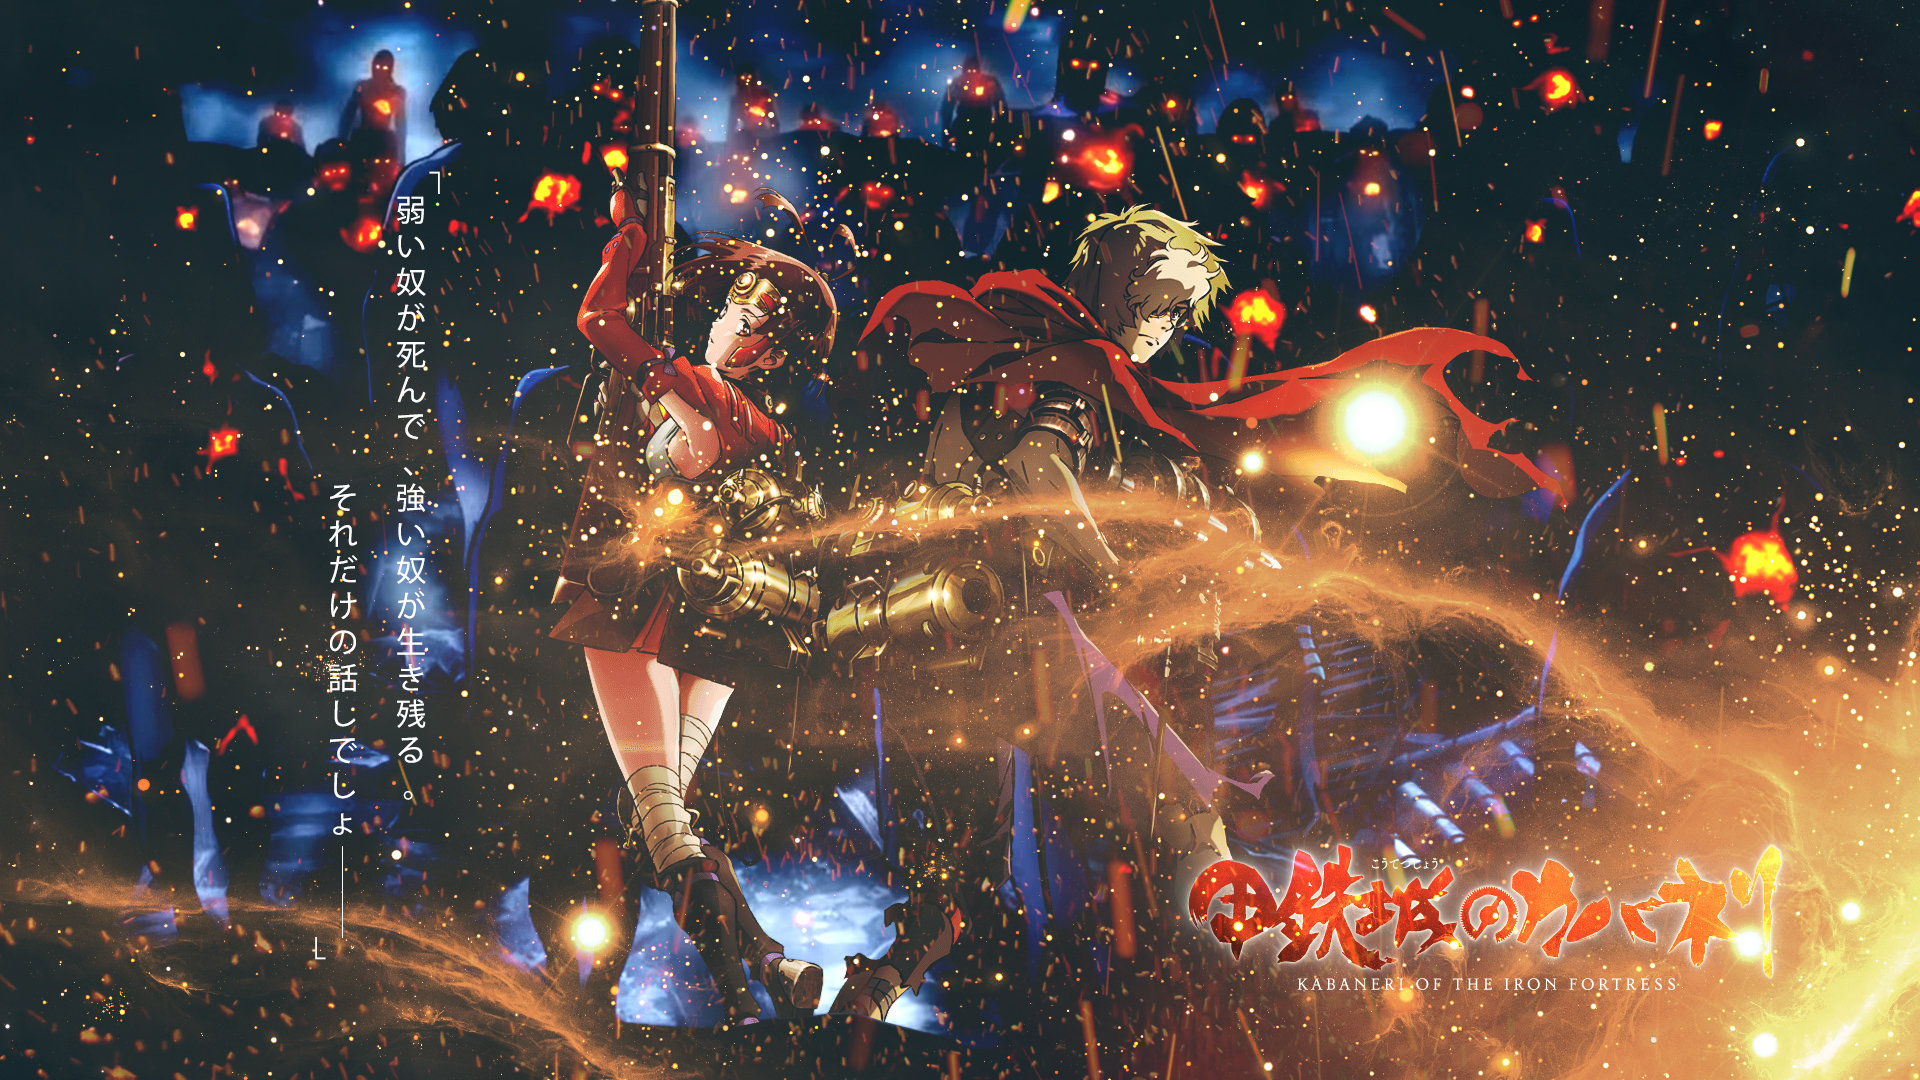 Download hd 1920x1080 Kabaneri Of The Iron Fortress desktop background ID:116861 for free